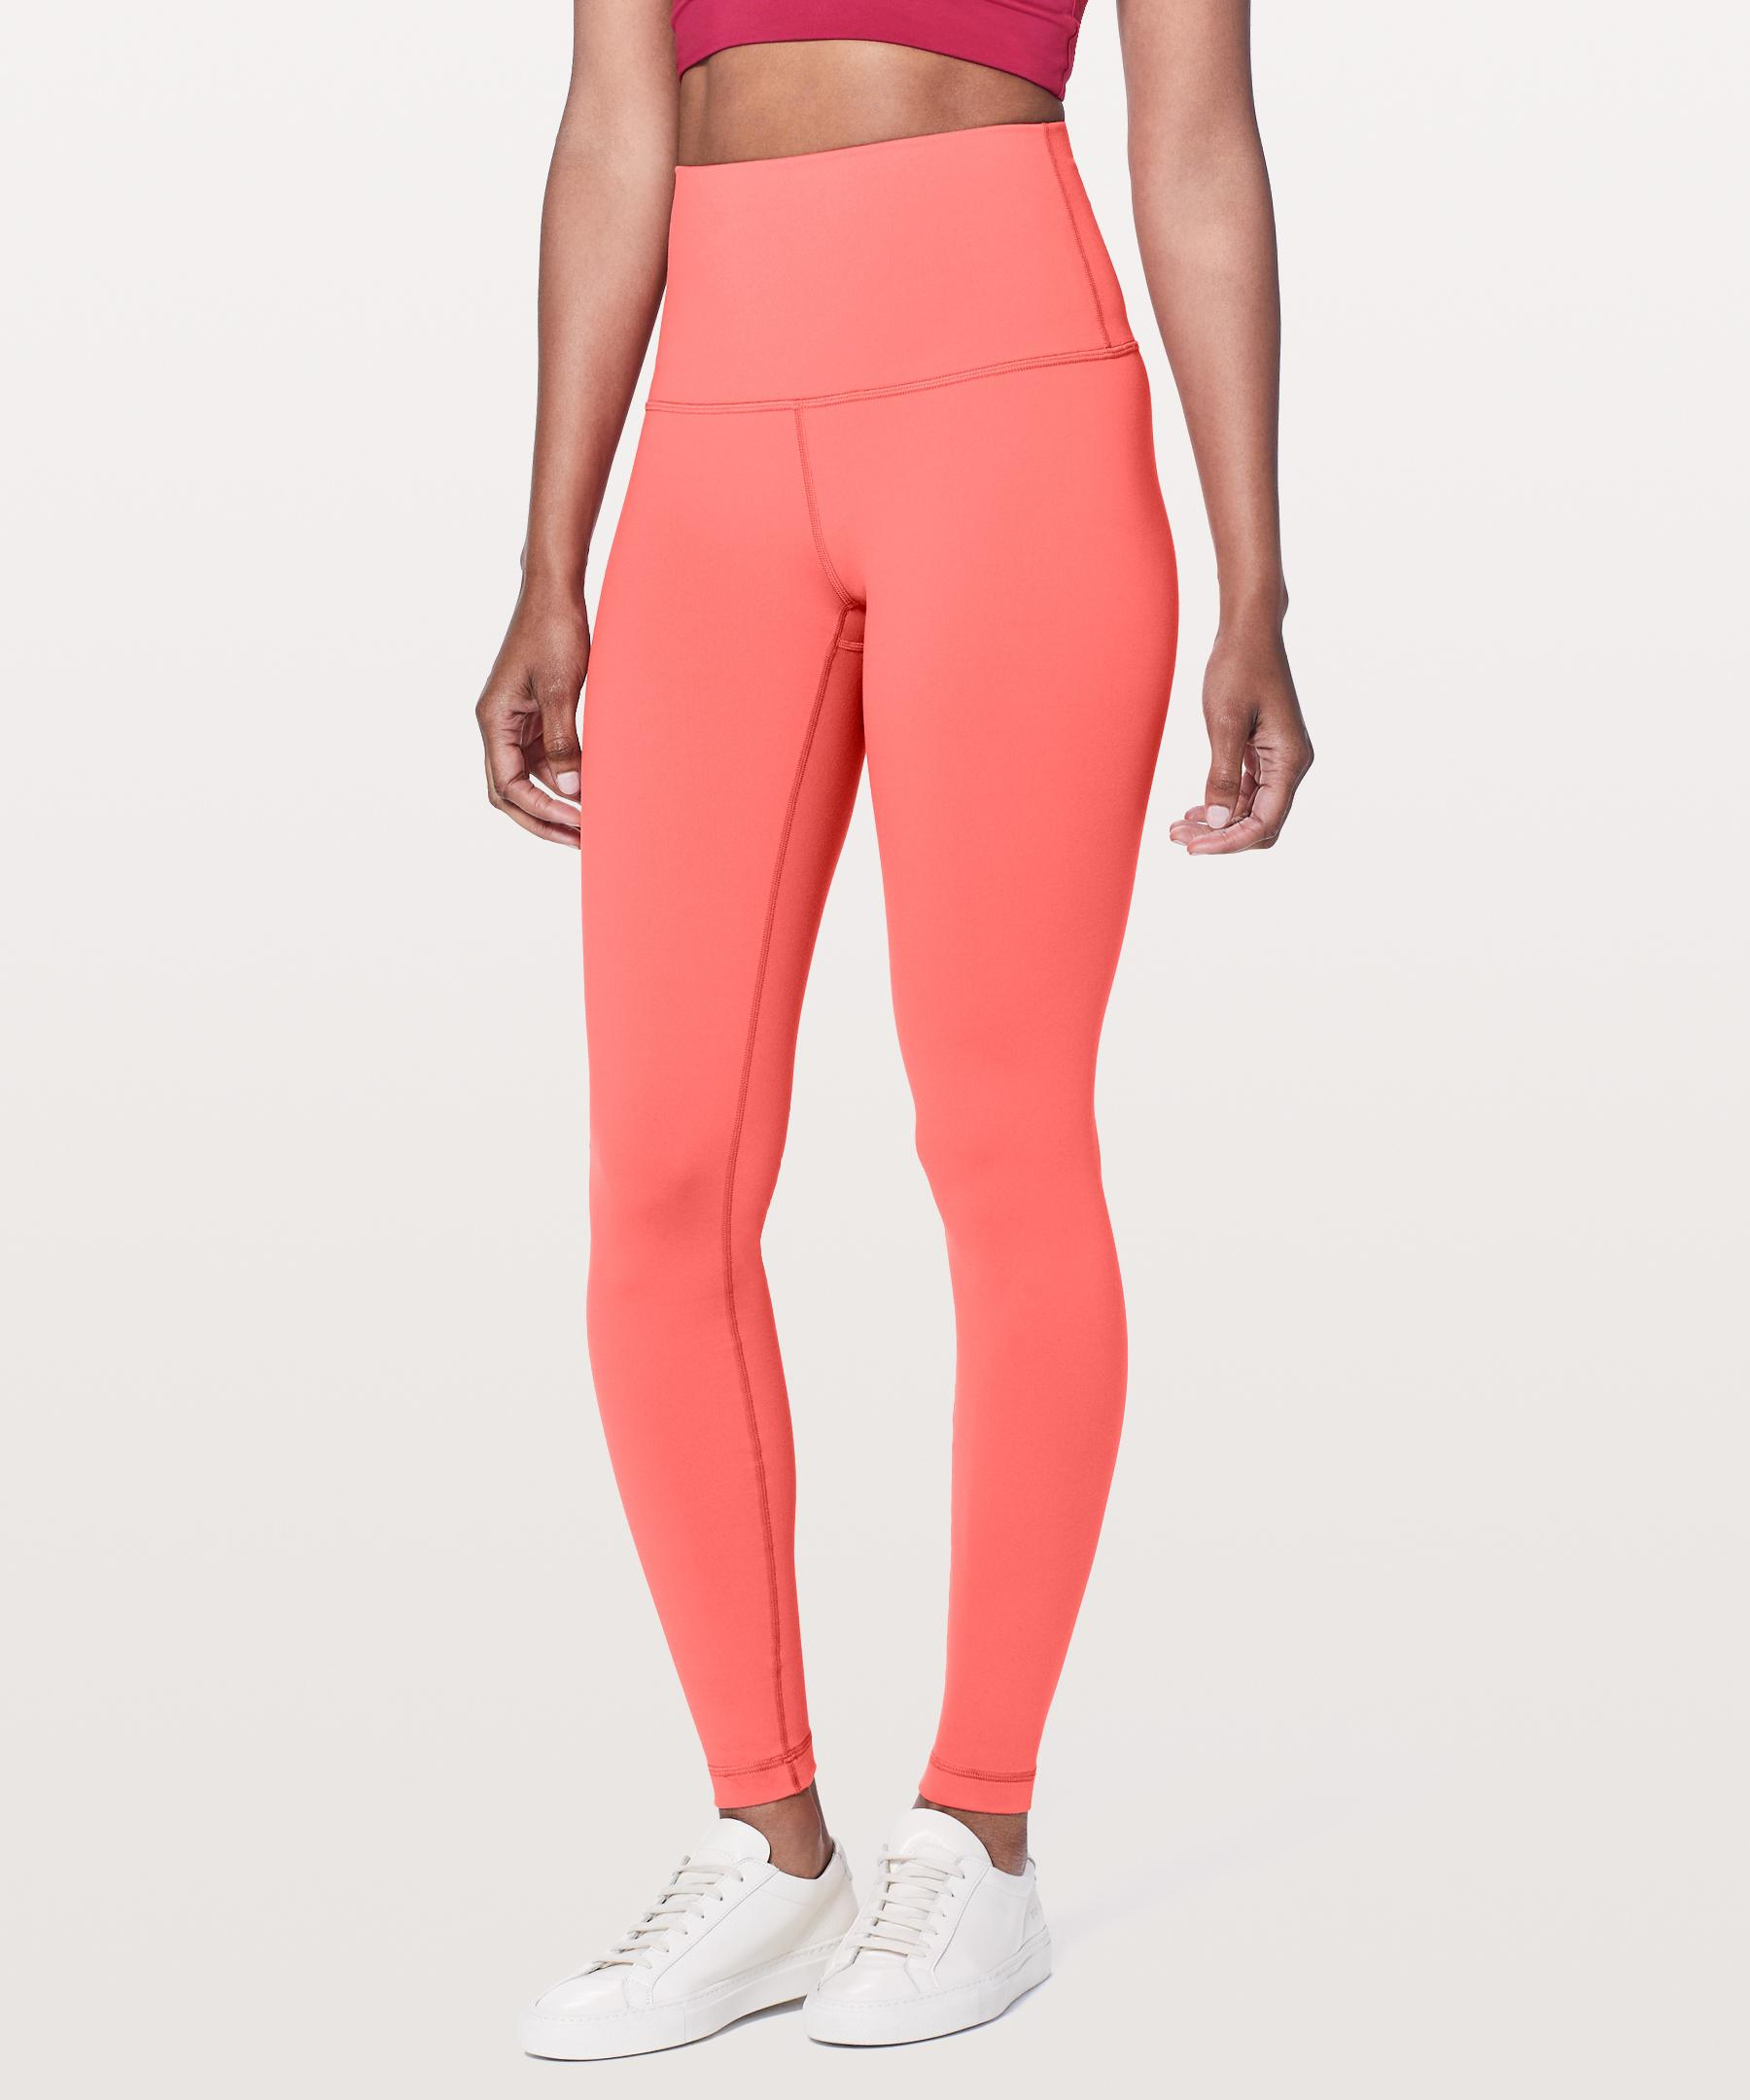 91d91ff2a lululemon athletica Wunder Under Super High-rise Tight  full-on Luon ...